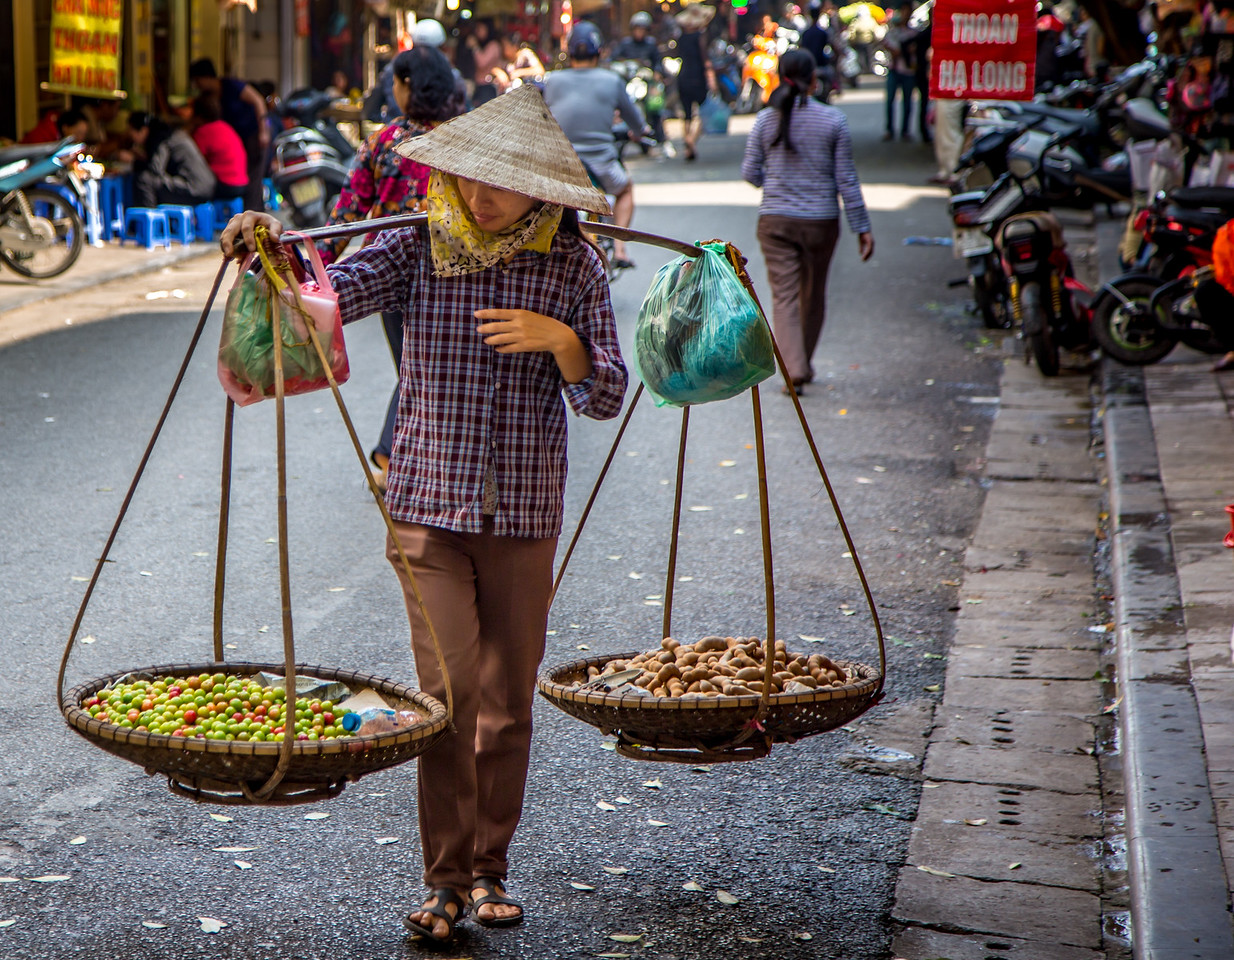 Woman Selling Produce Uses a Carry Pole